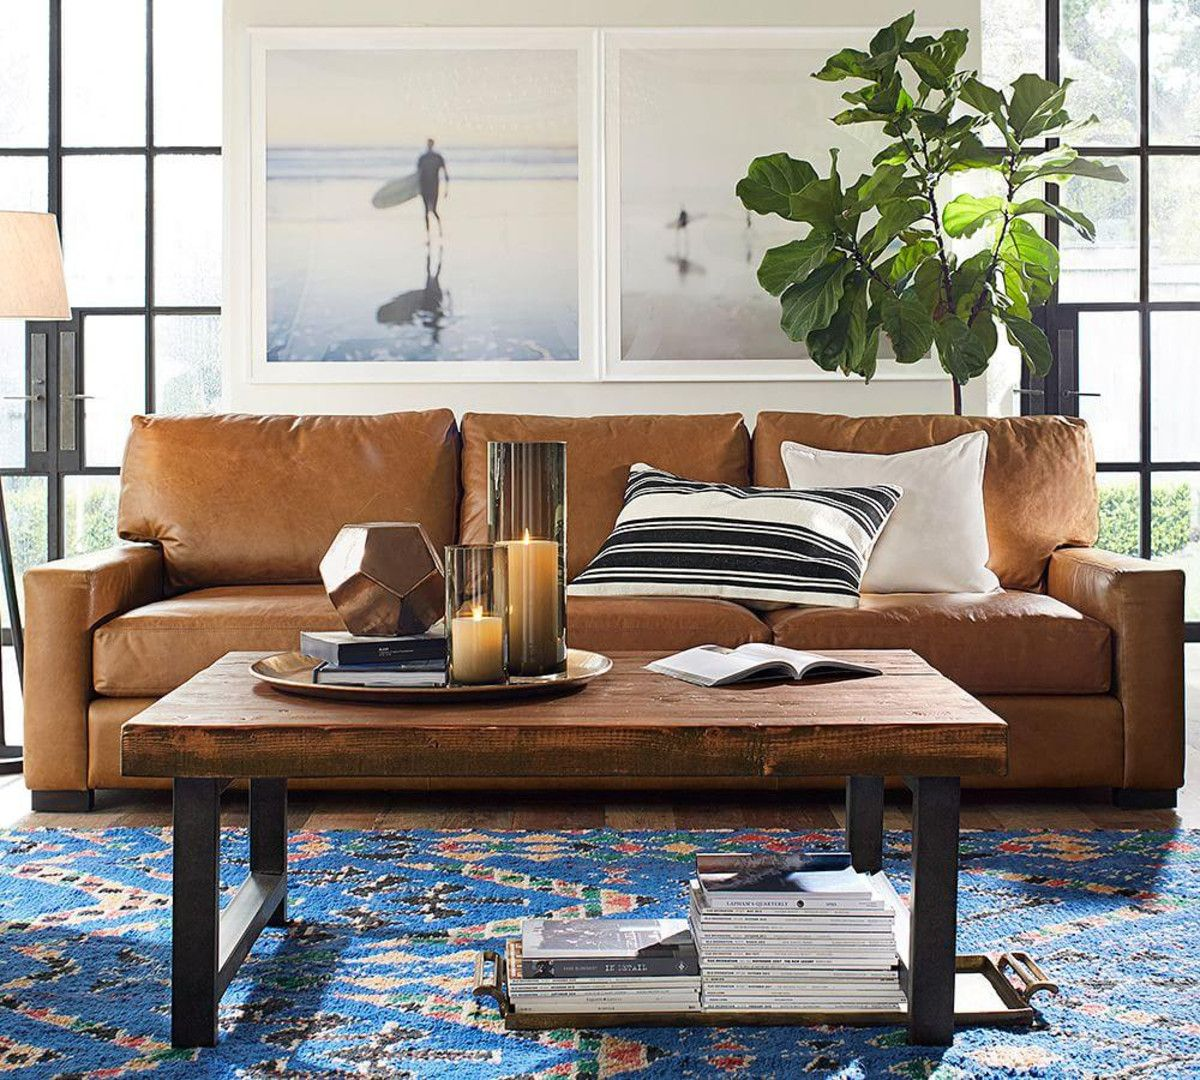 Lorenzo Caramel Leather Living Room Set from JNM   Coleman ...